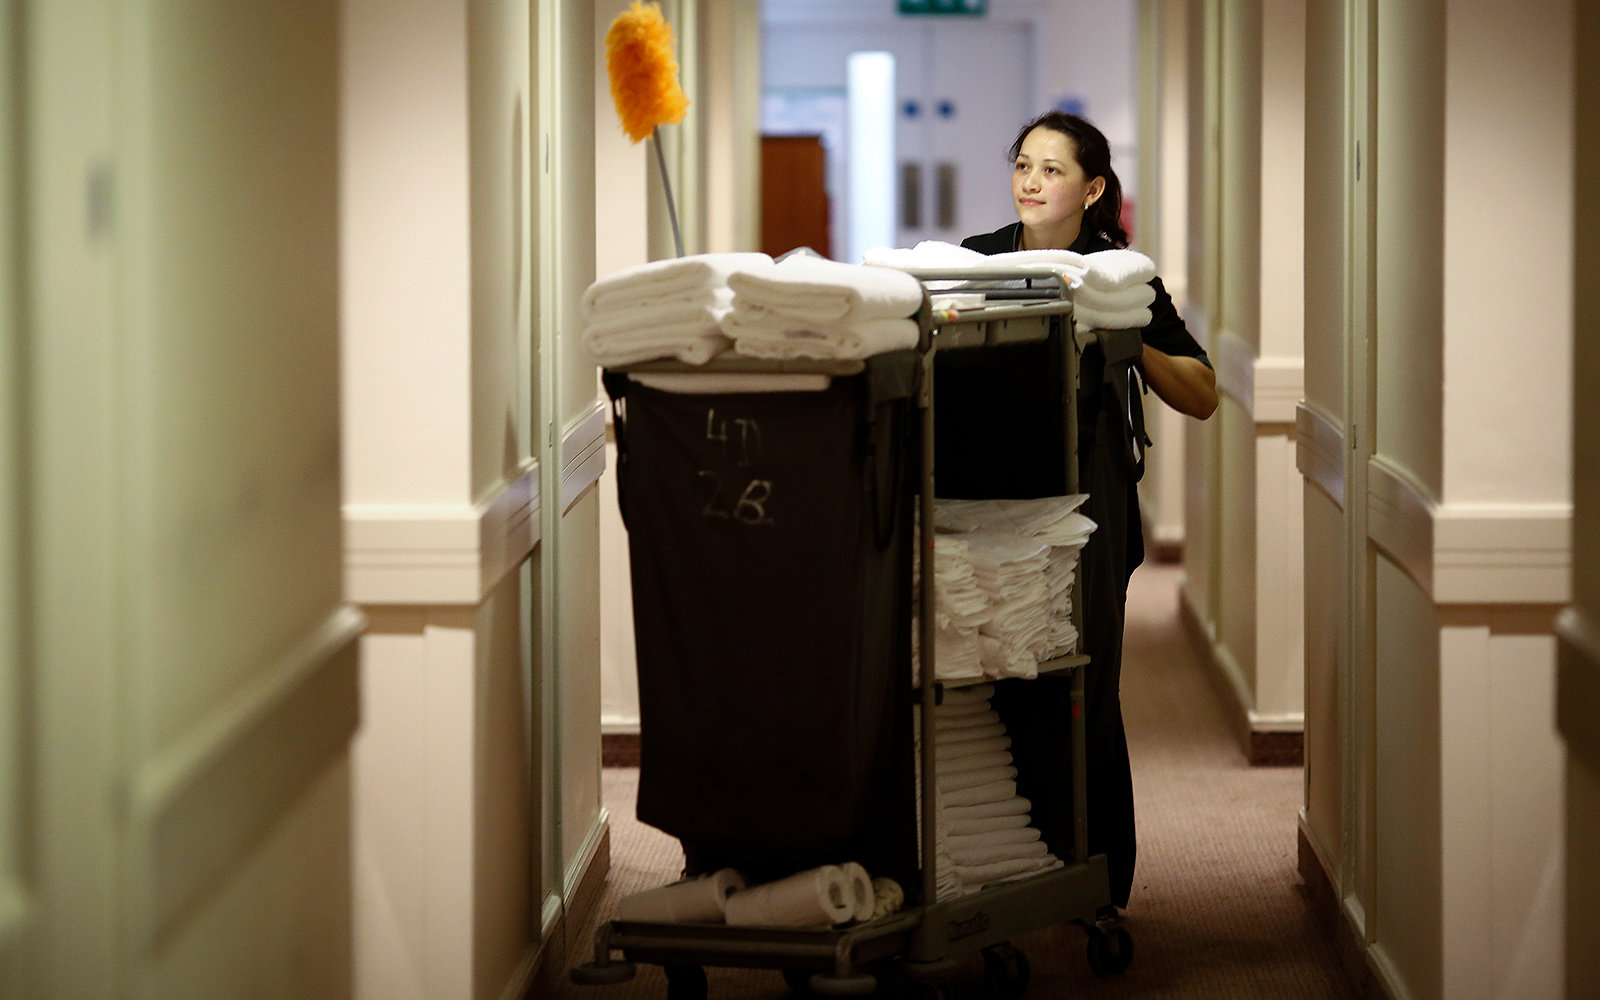 Resort Cleaning Services : Traveler finds ominous note in hotel room travel leisure